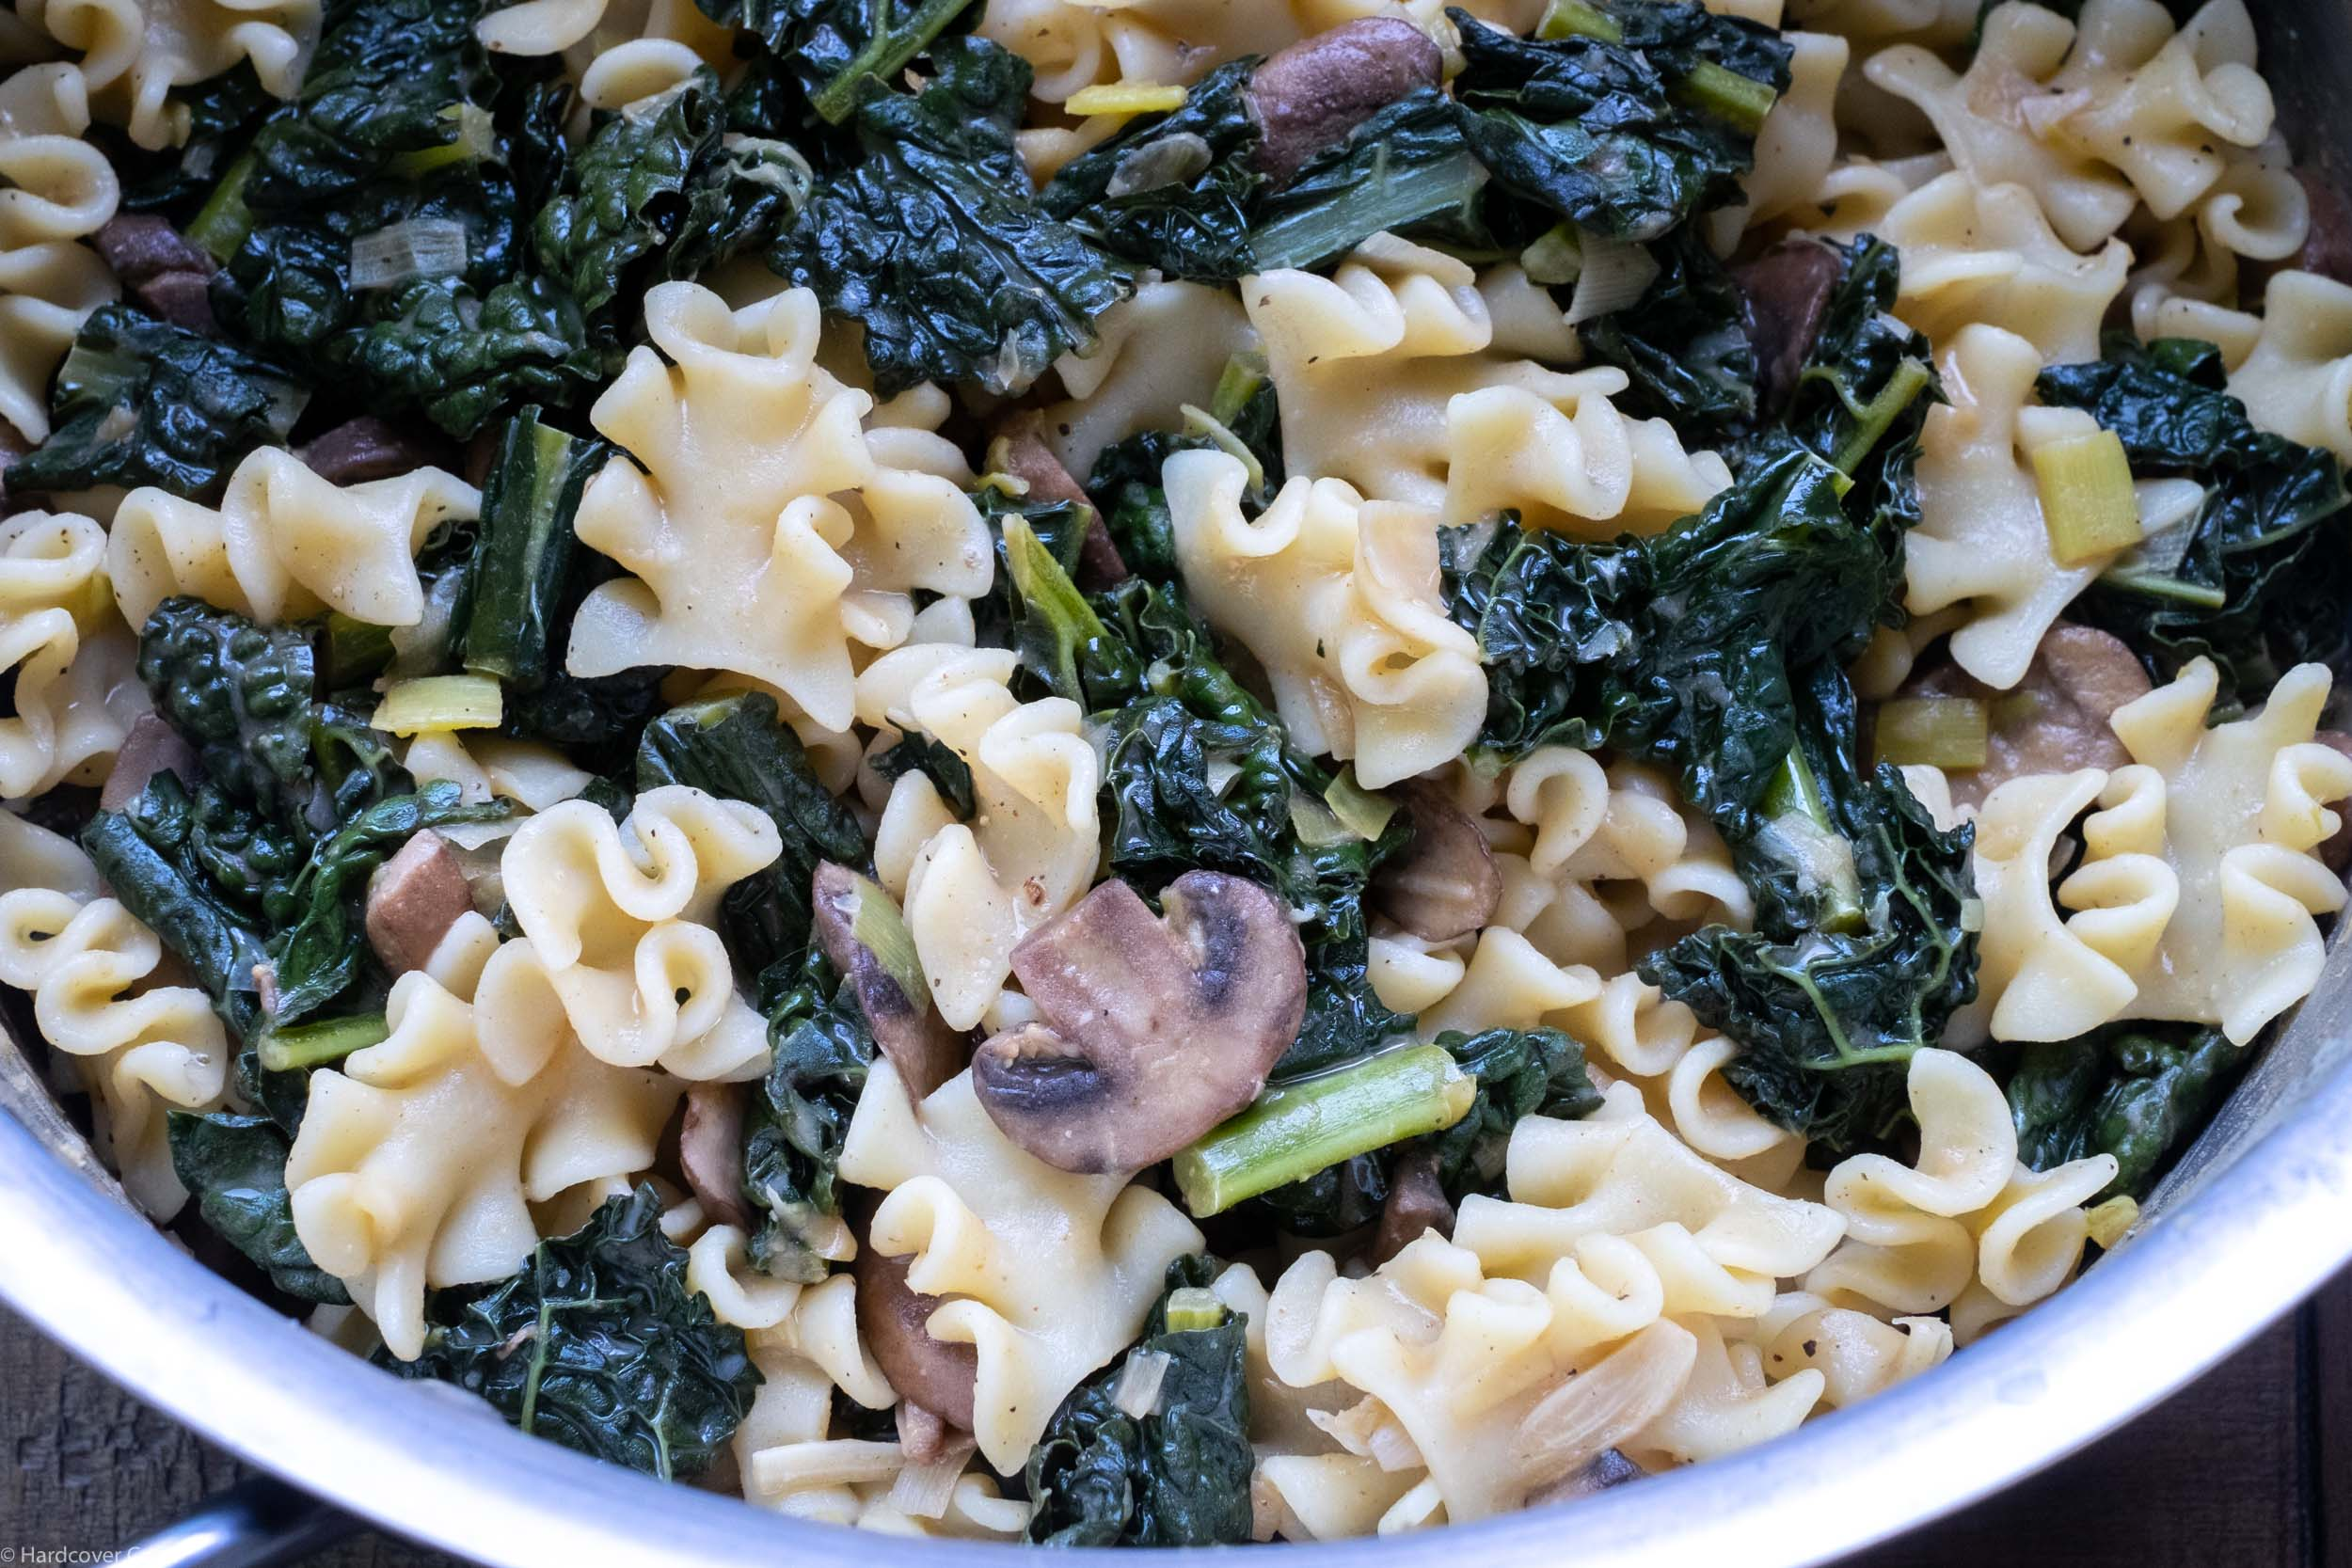 mustardy-mushroom-and-kale-stroganoff-from-dinner-for-everyone.jpg